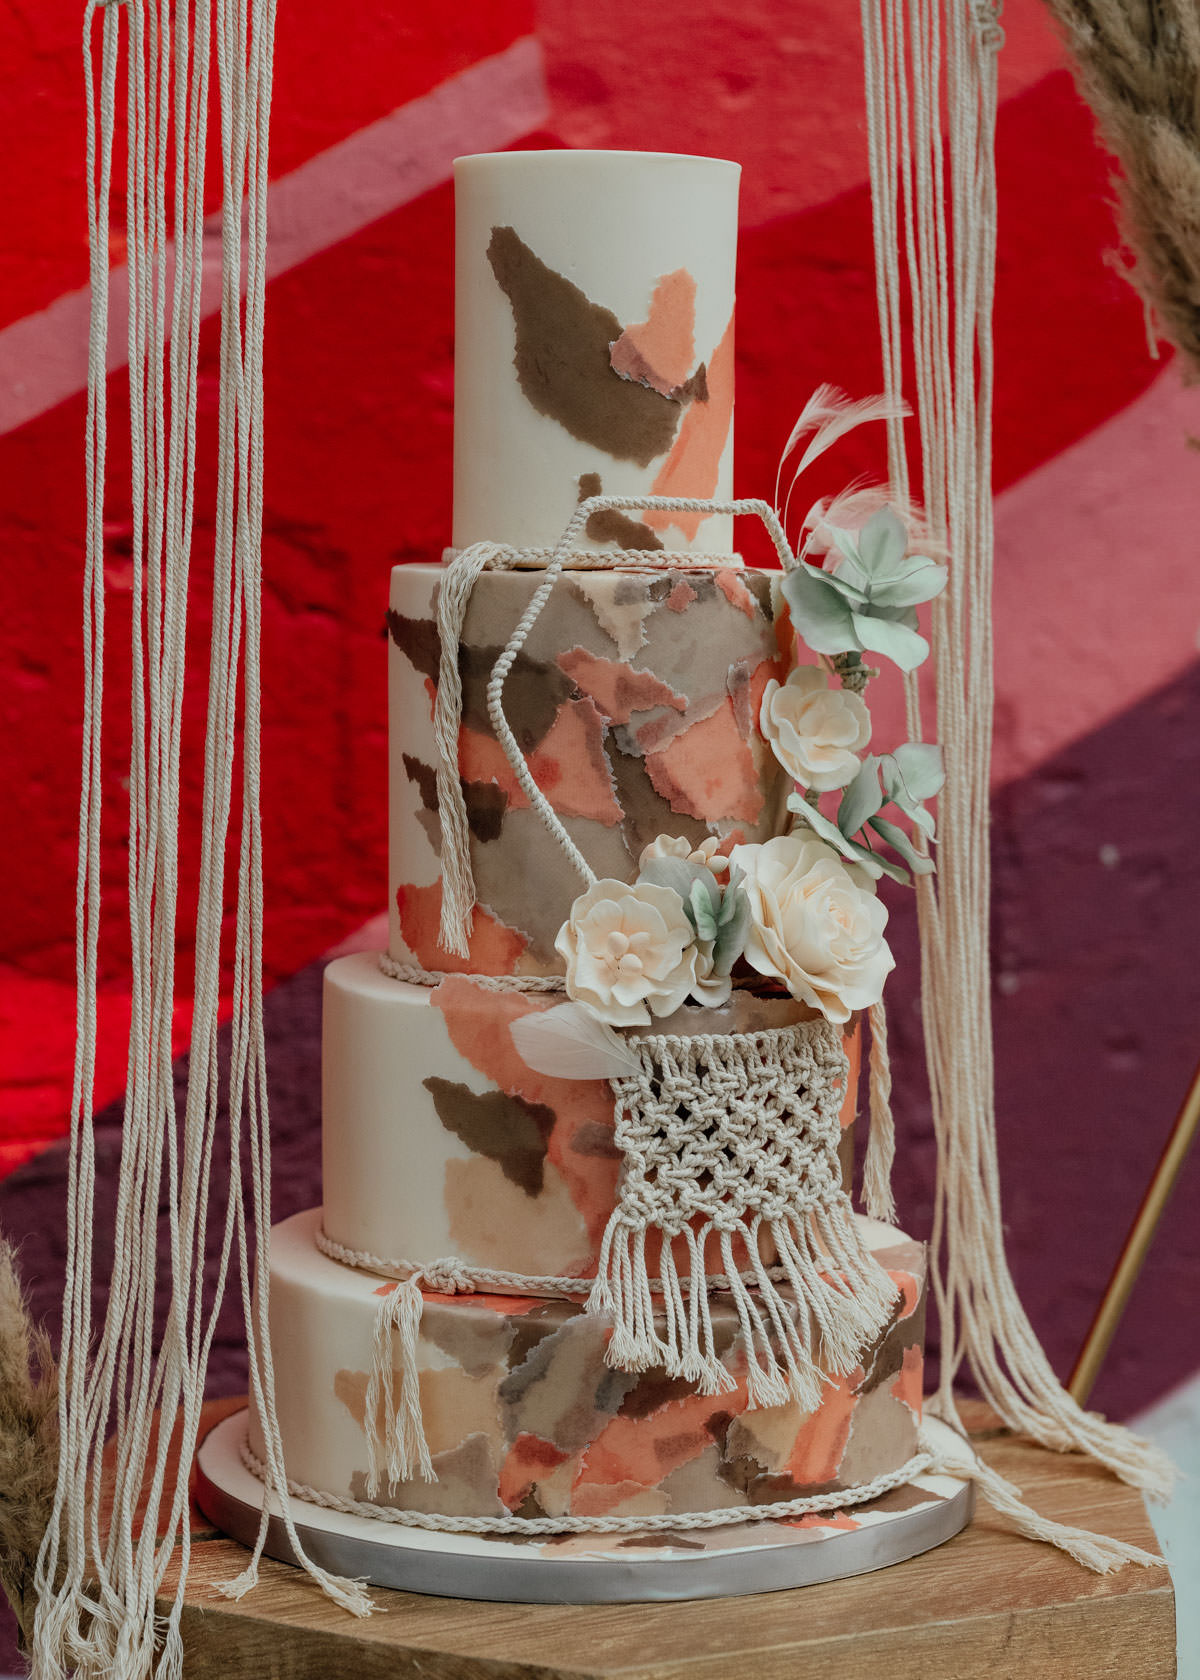 Industrial Meets Boho Wedding Inspiration: Hexagon tiered cake with Macrame and roses